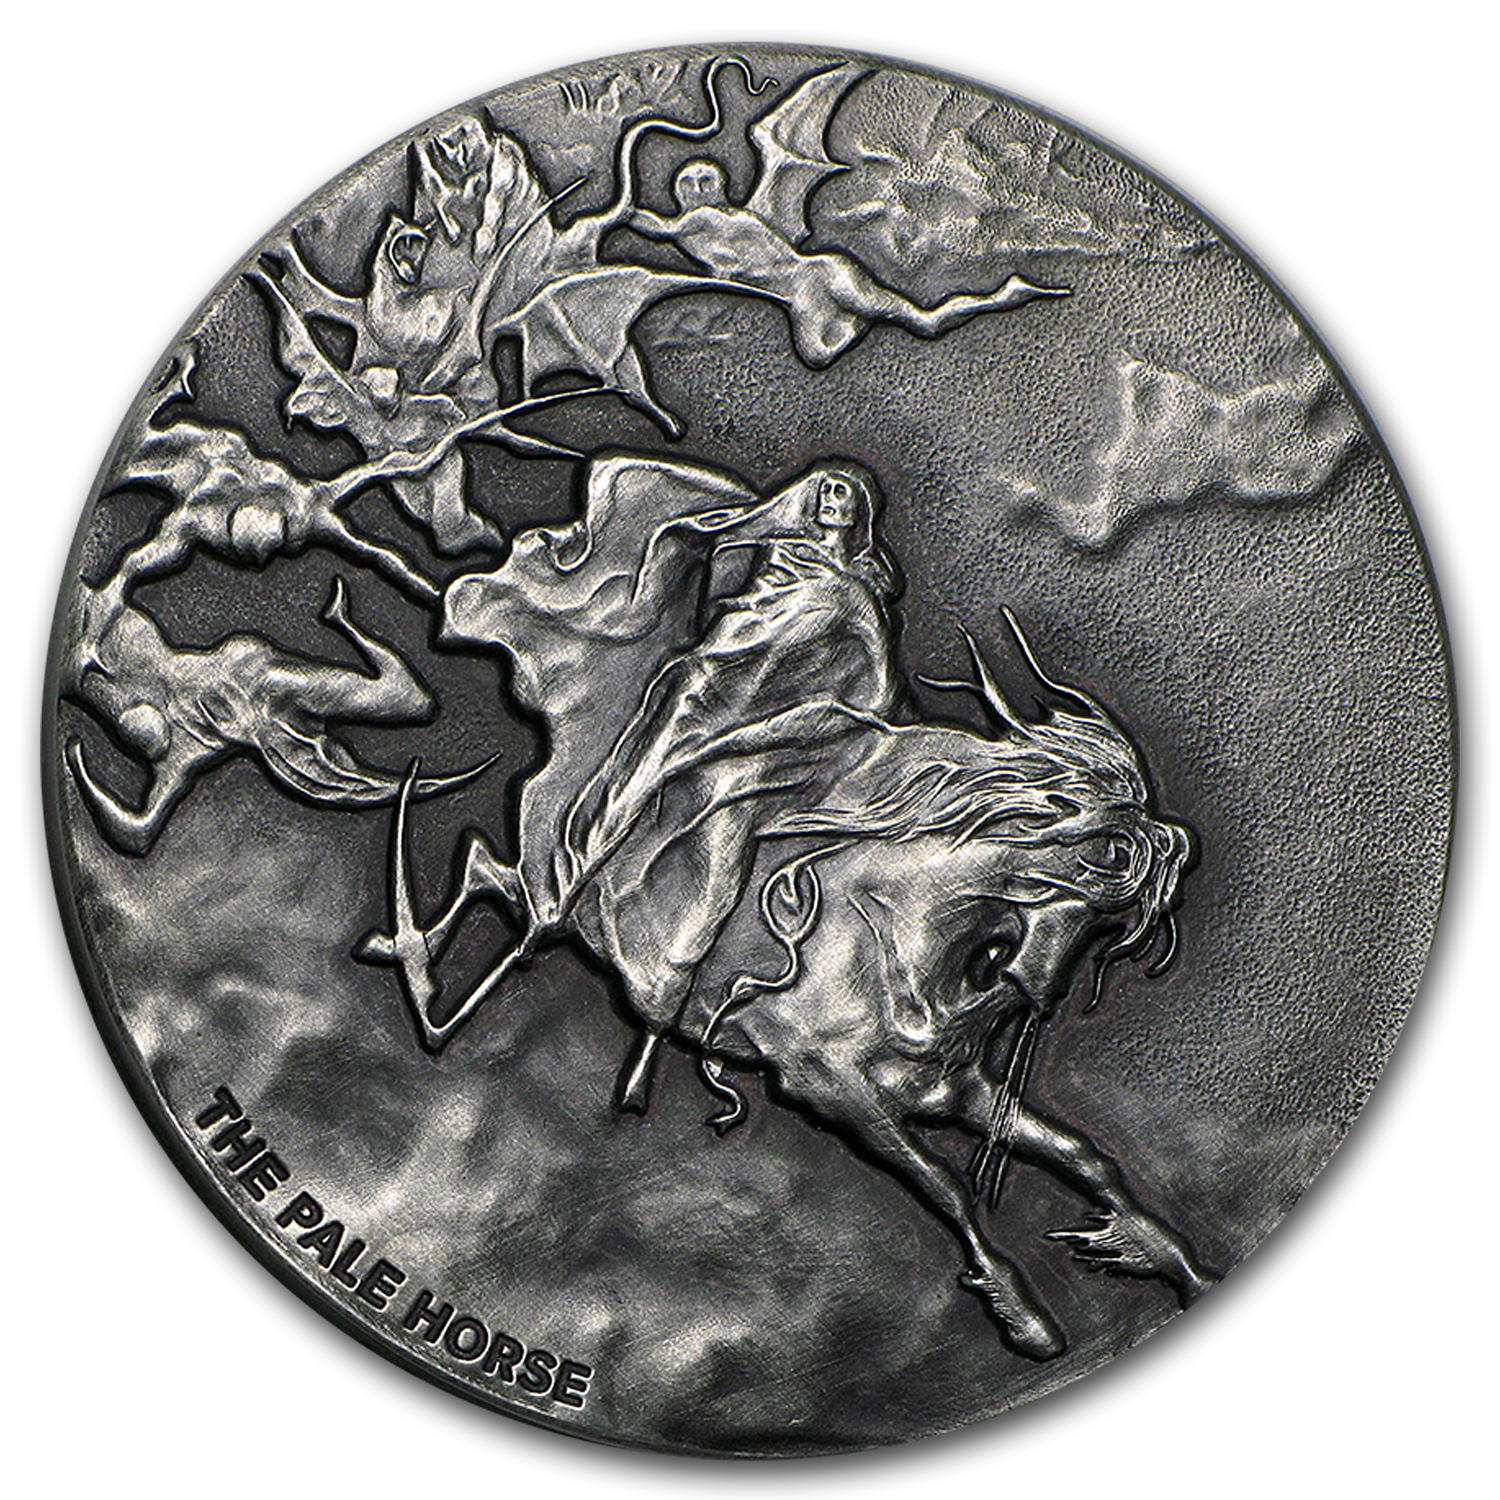 2015 2 oz Silver Coin - Biblical Series (Pale Horse)